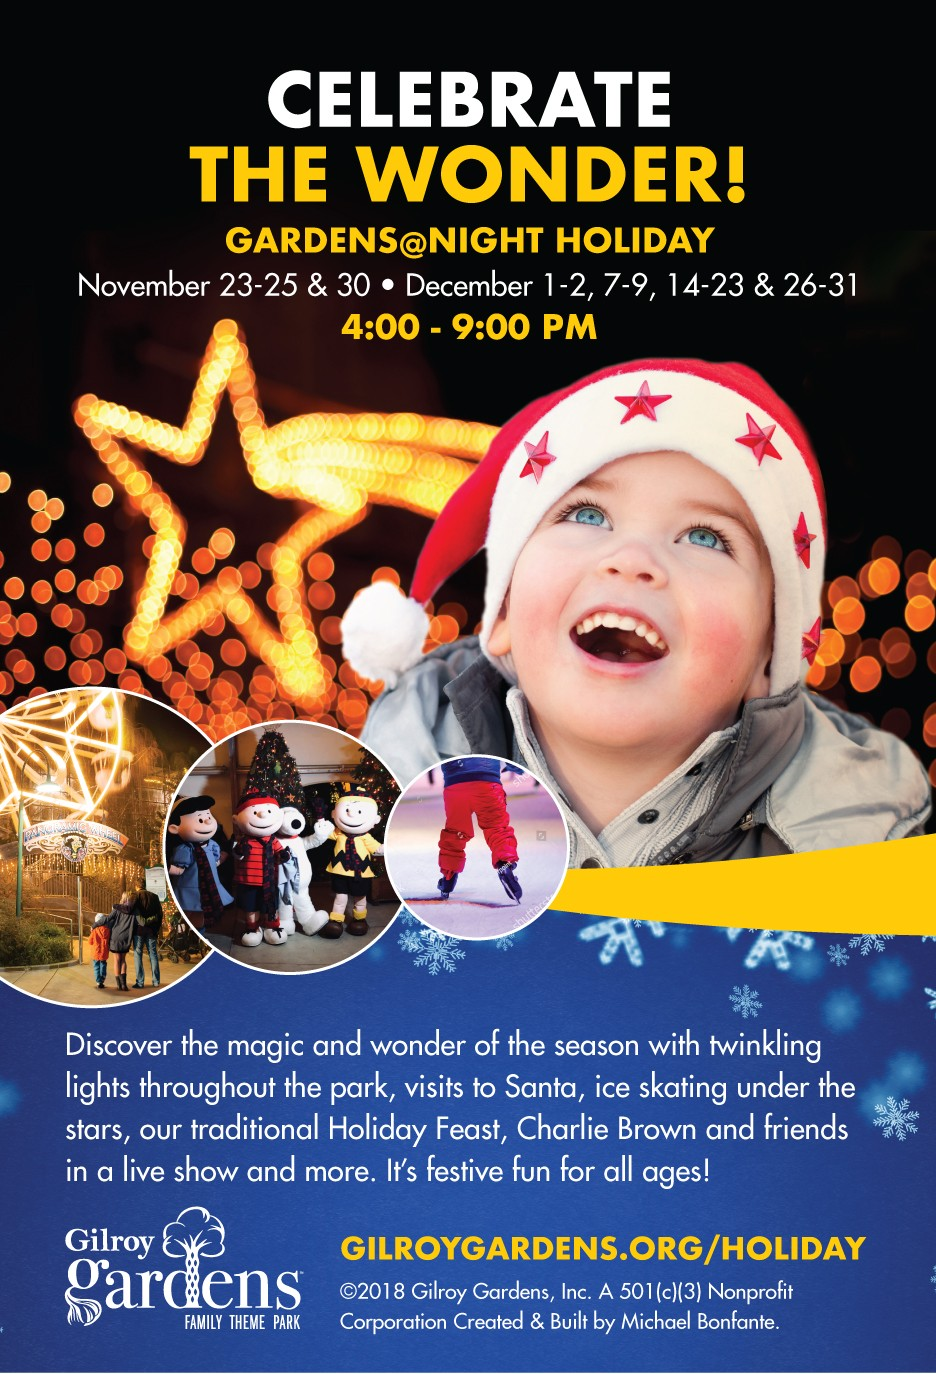 Celebrate The Wonder! Gardens@Night Holiday